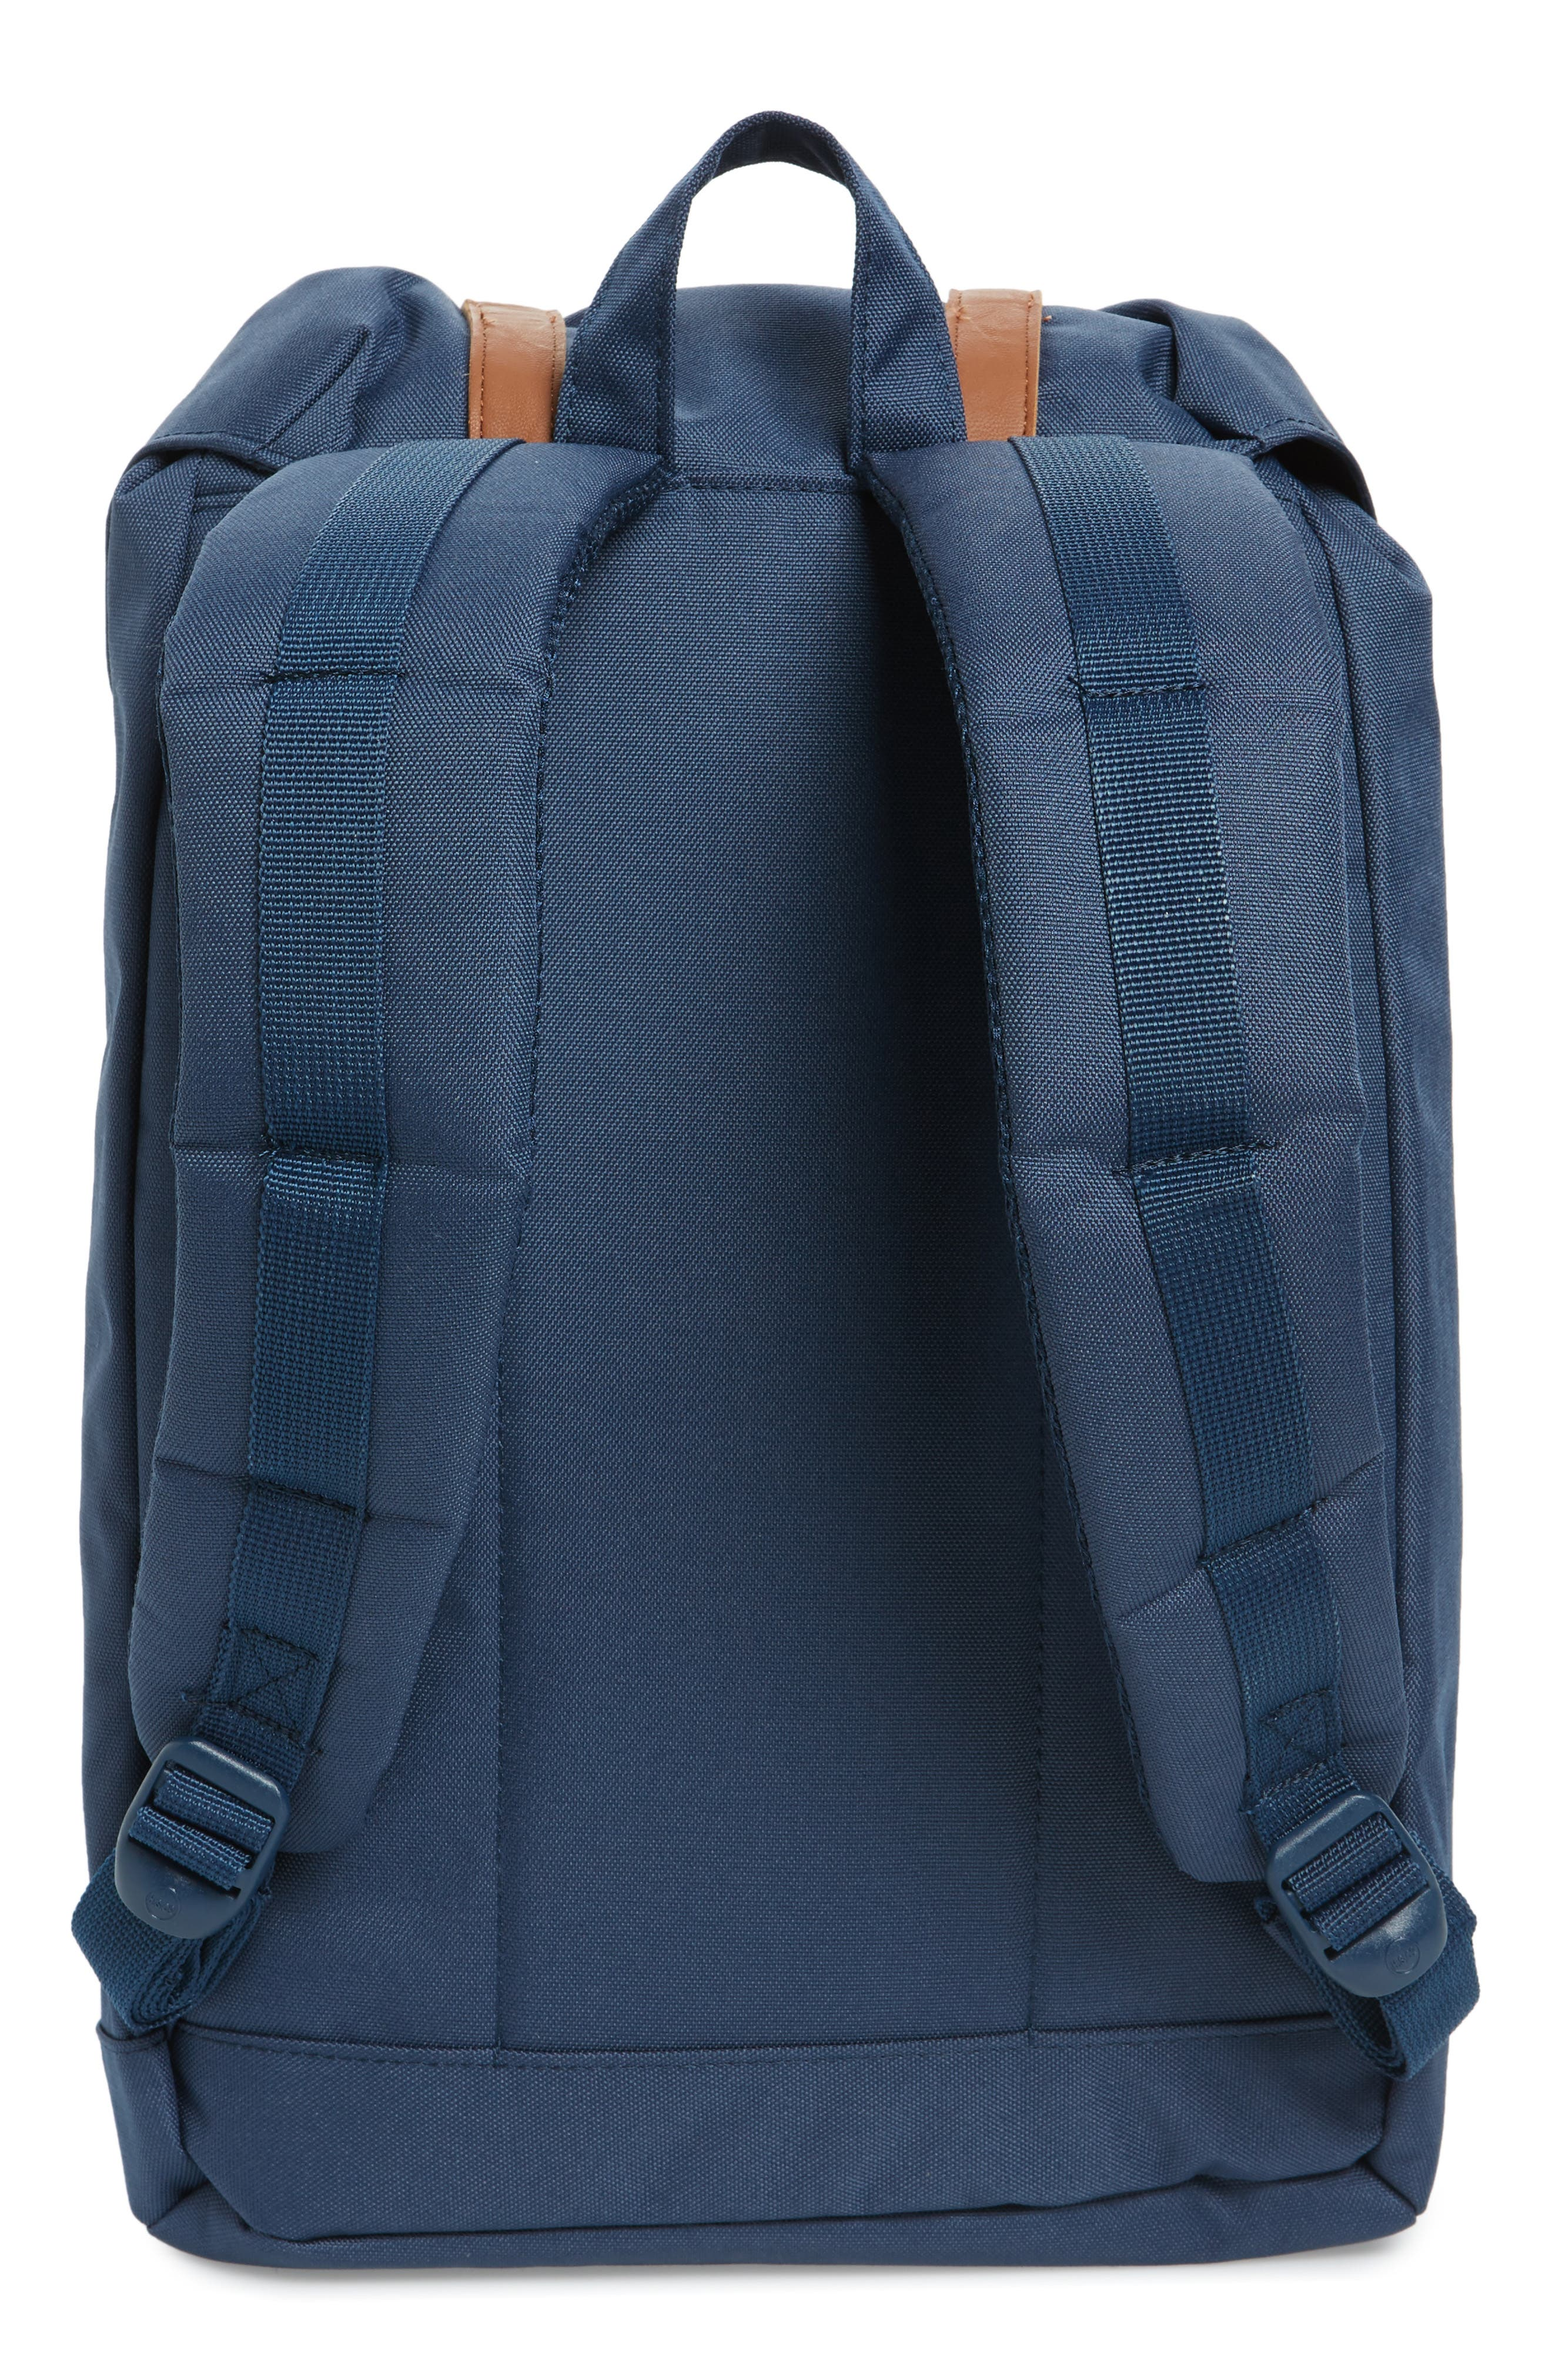 Retreat Mid Volume Backpack,                             Alternate thumbnail 3, color,                             Navy